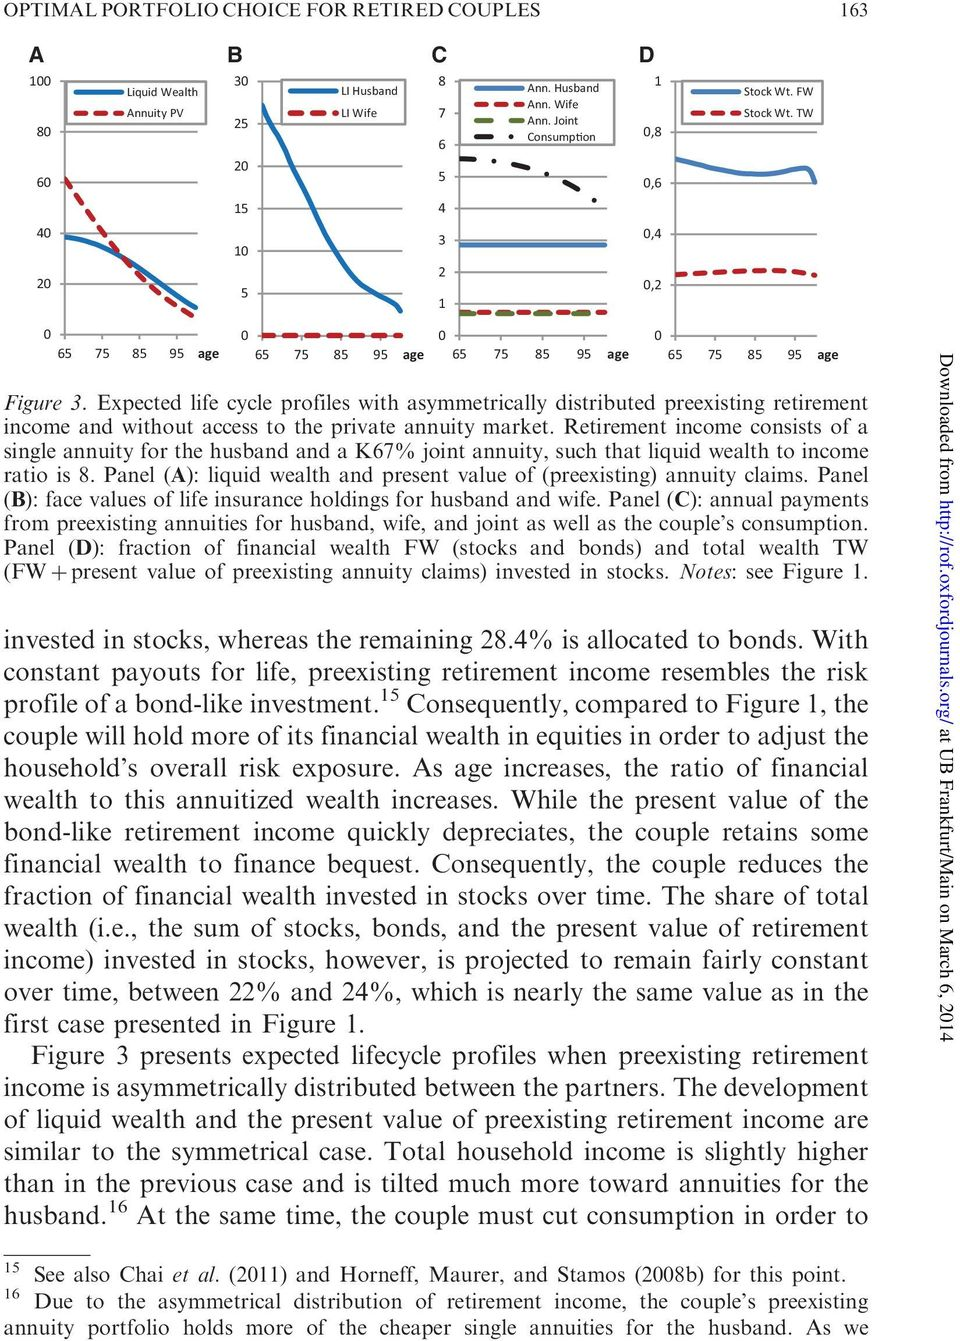 Expected life cycle profiles with asymmetrically distributed preexisting retirement income and without access to the private annuity market.